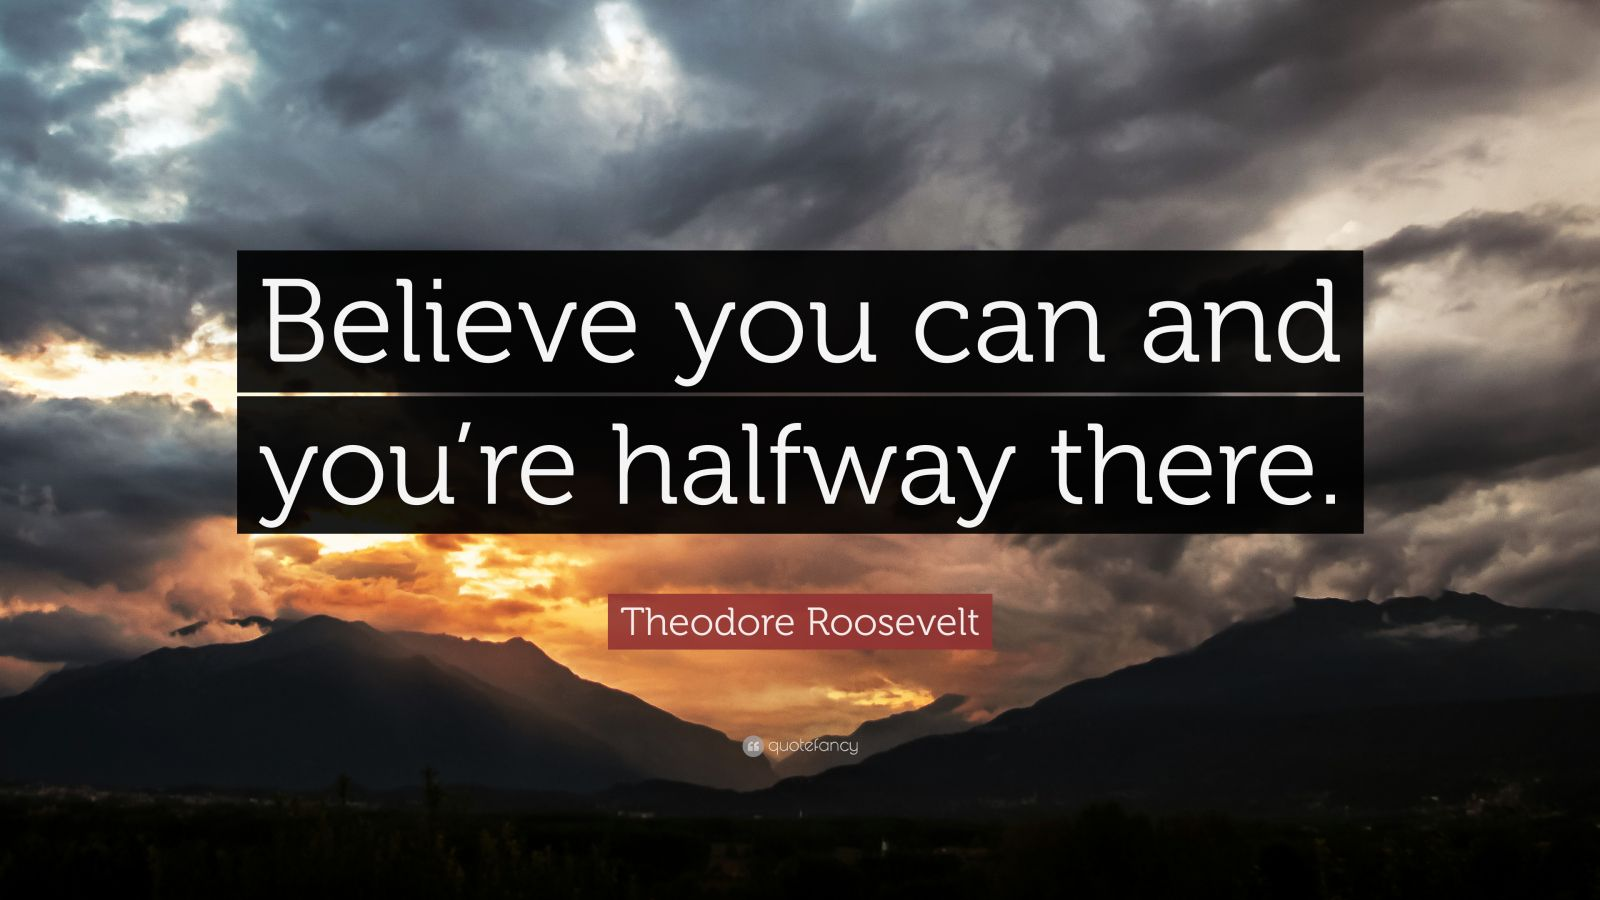 Brian Tracy Quotes Wallpaper Theodore Roosevelt Quote Believe You Can And You Re